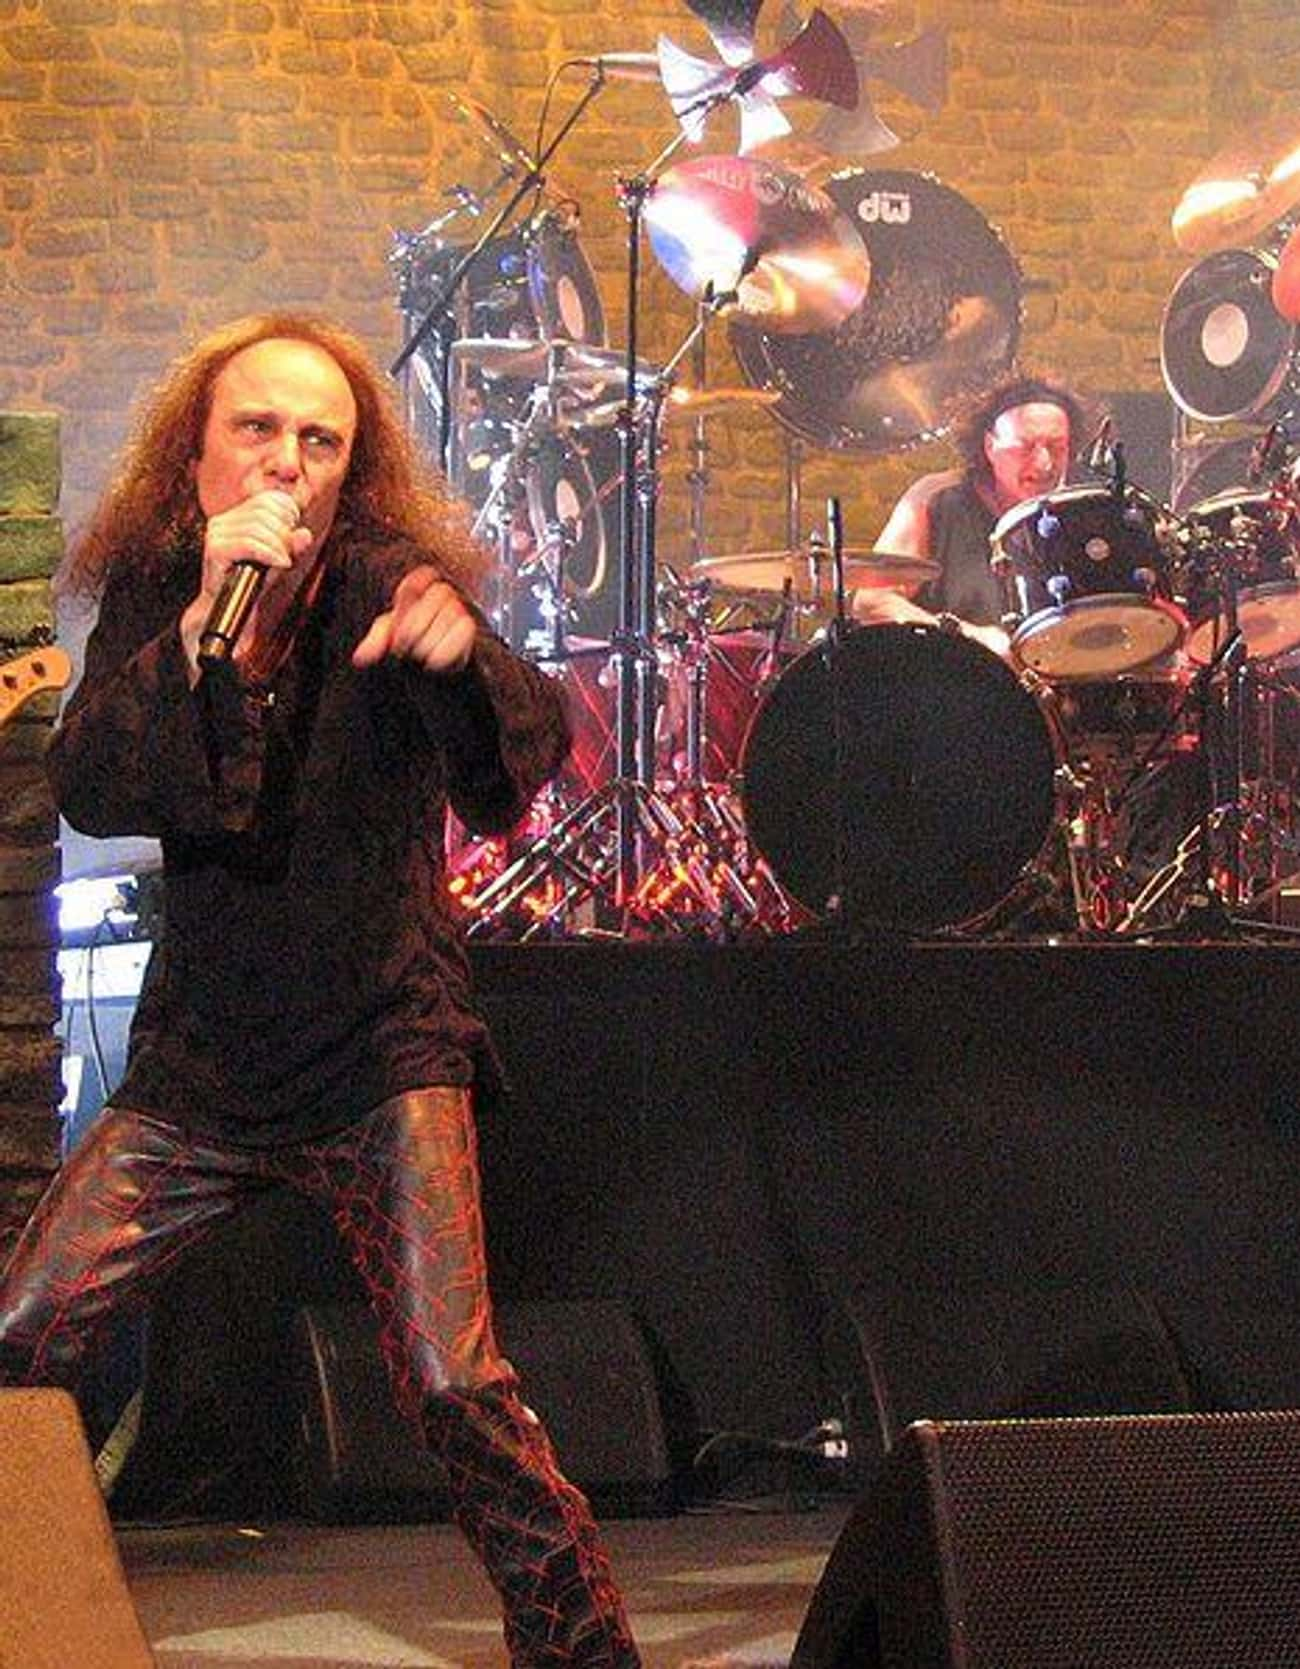 He Didn't Worship The Devil is listed (or ranked) 1 on the list 11 Myths About Ronnie James Dio Debunked